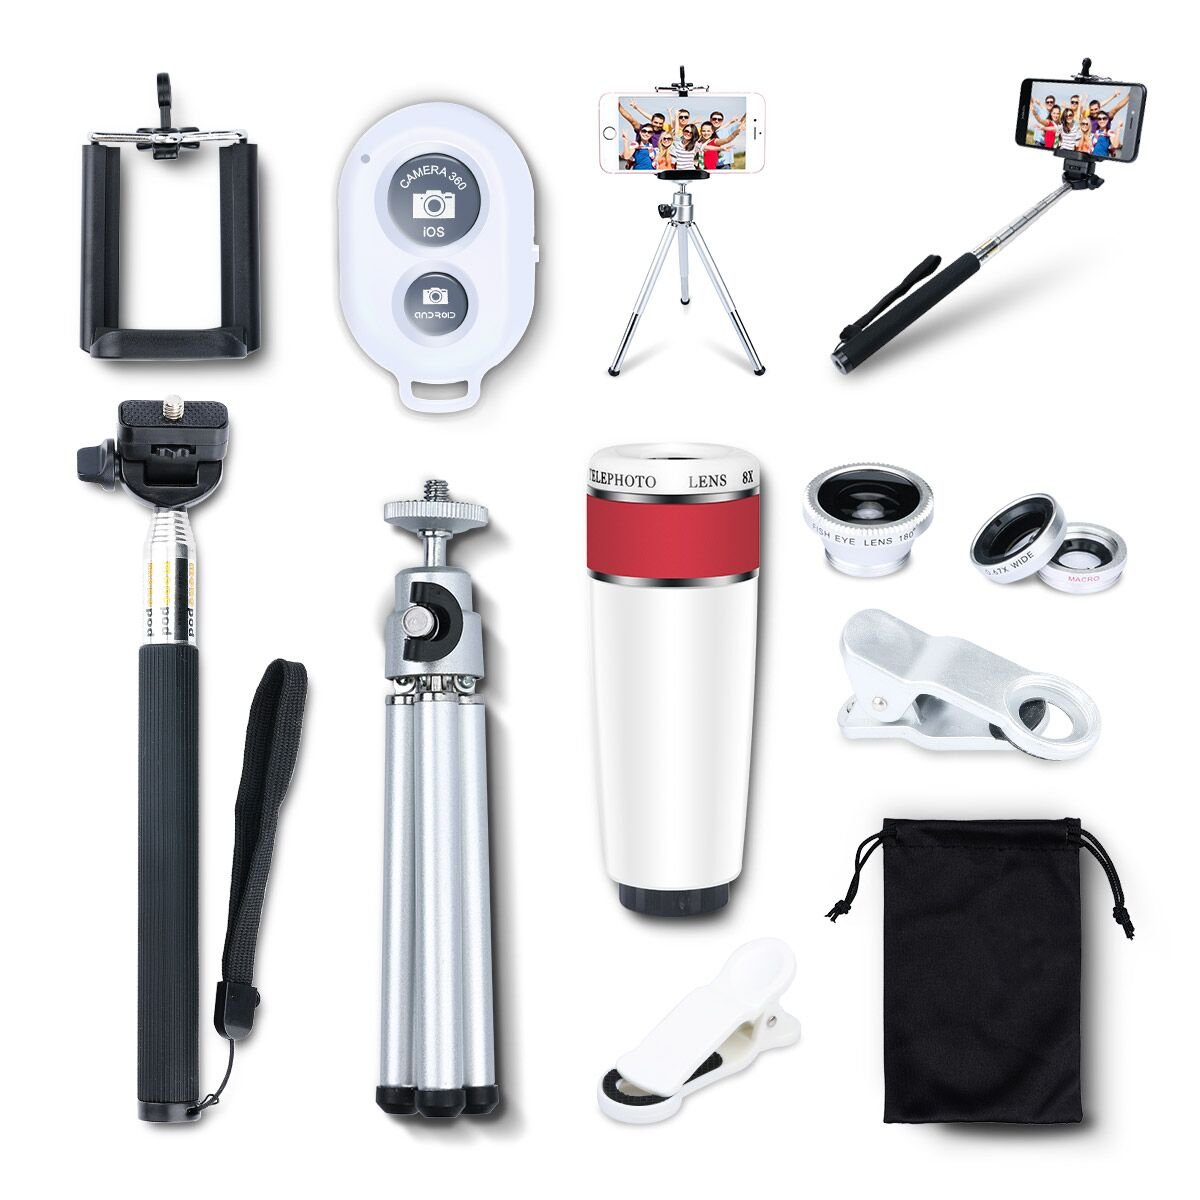 AFAITH® 10-in-1 Camera Lens Kit 8x Telephoto Telescope Lens + Fish Eye Lens + Wide Angle + Macro Lens + Selfie Stick Monopod + Bluetooth Remote Control + Mini Tripod For iPhone 4S 5 5C 5S 6 6 Plus Samsung Galaxy S3 S4 S5 S6 Edge Note 2 3 4 HTC PA033